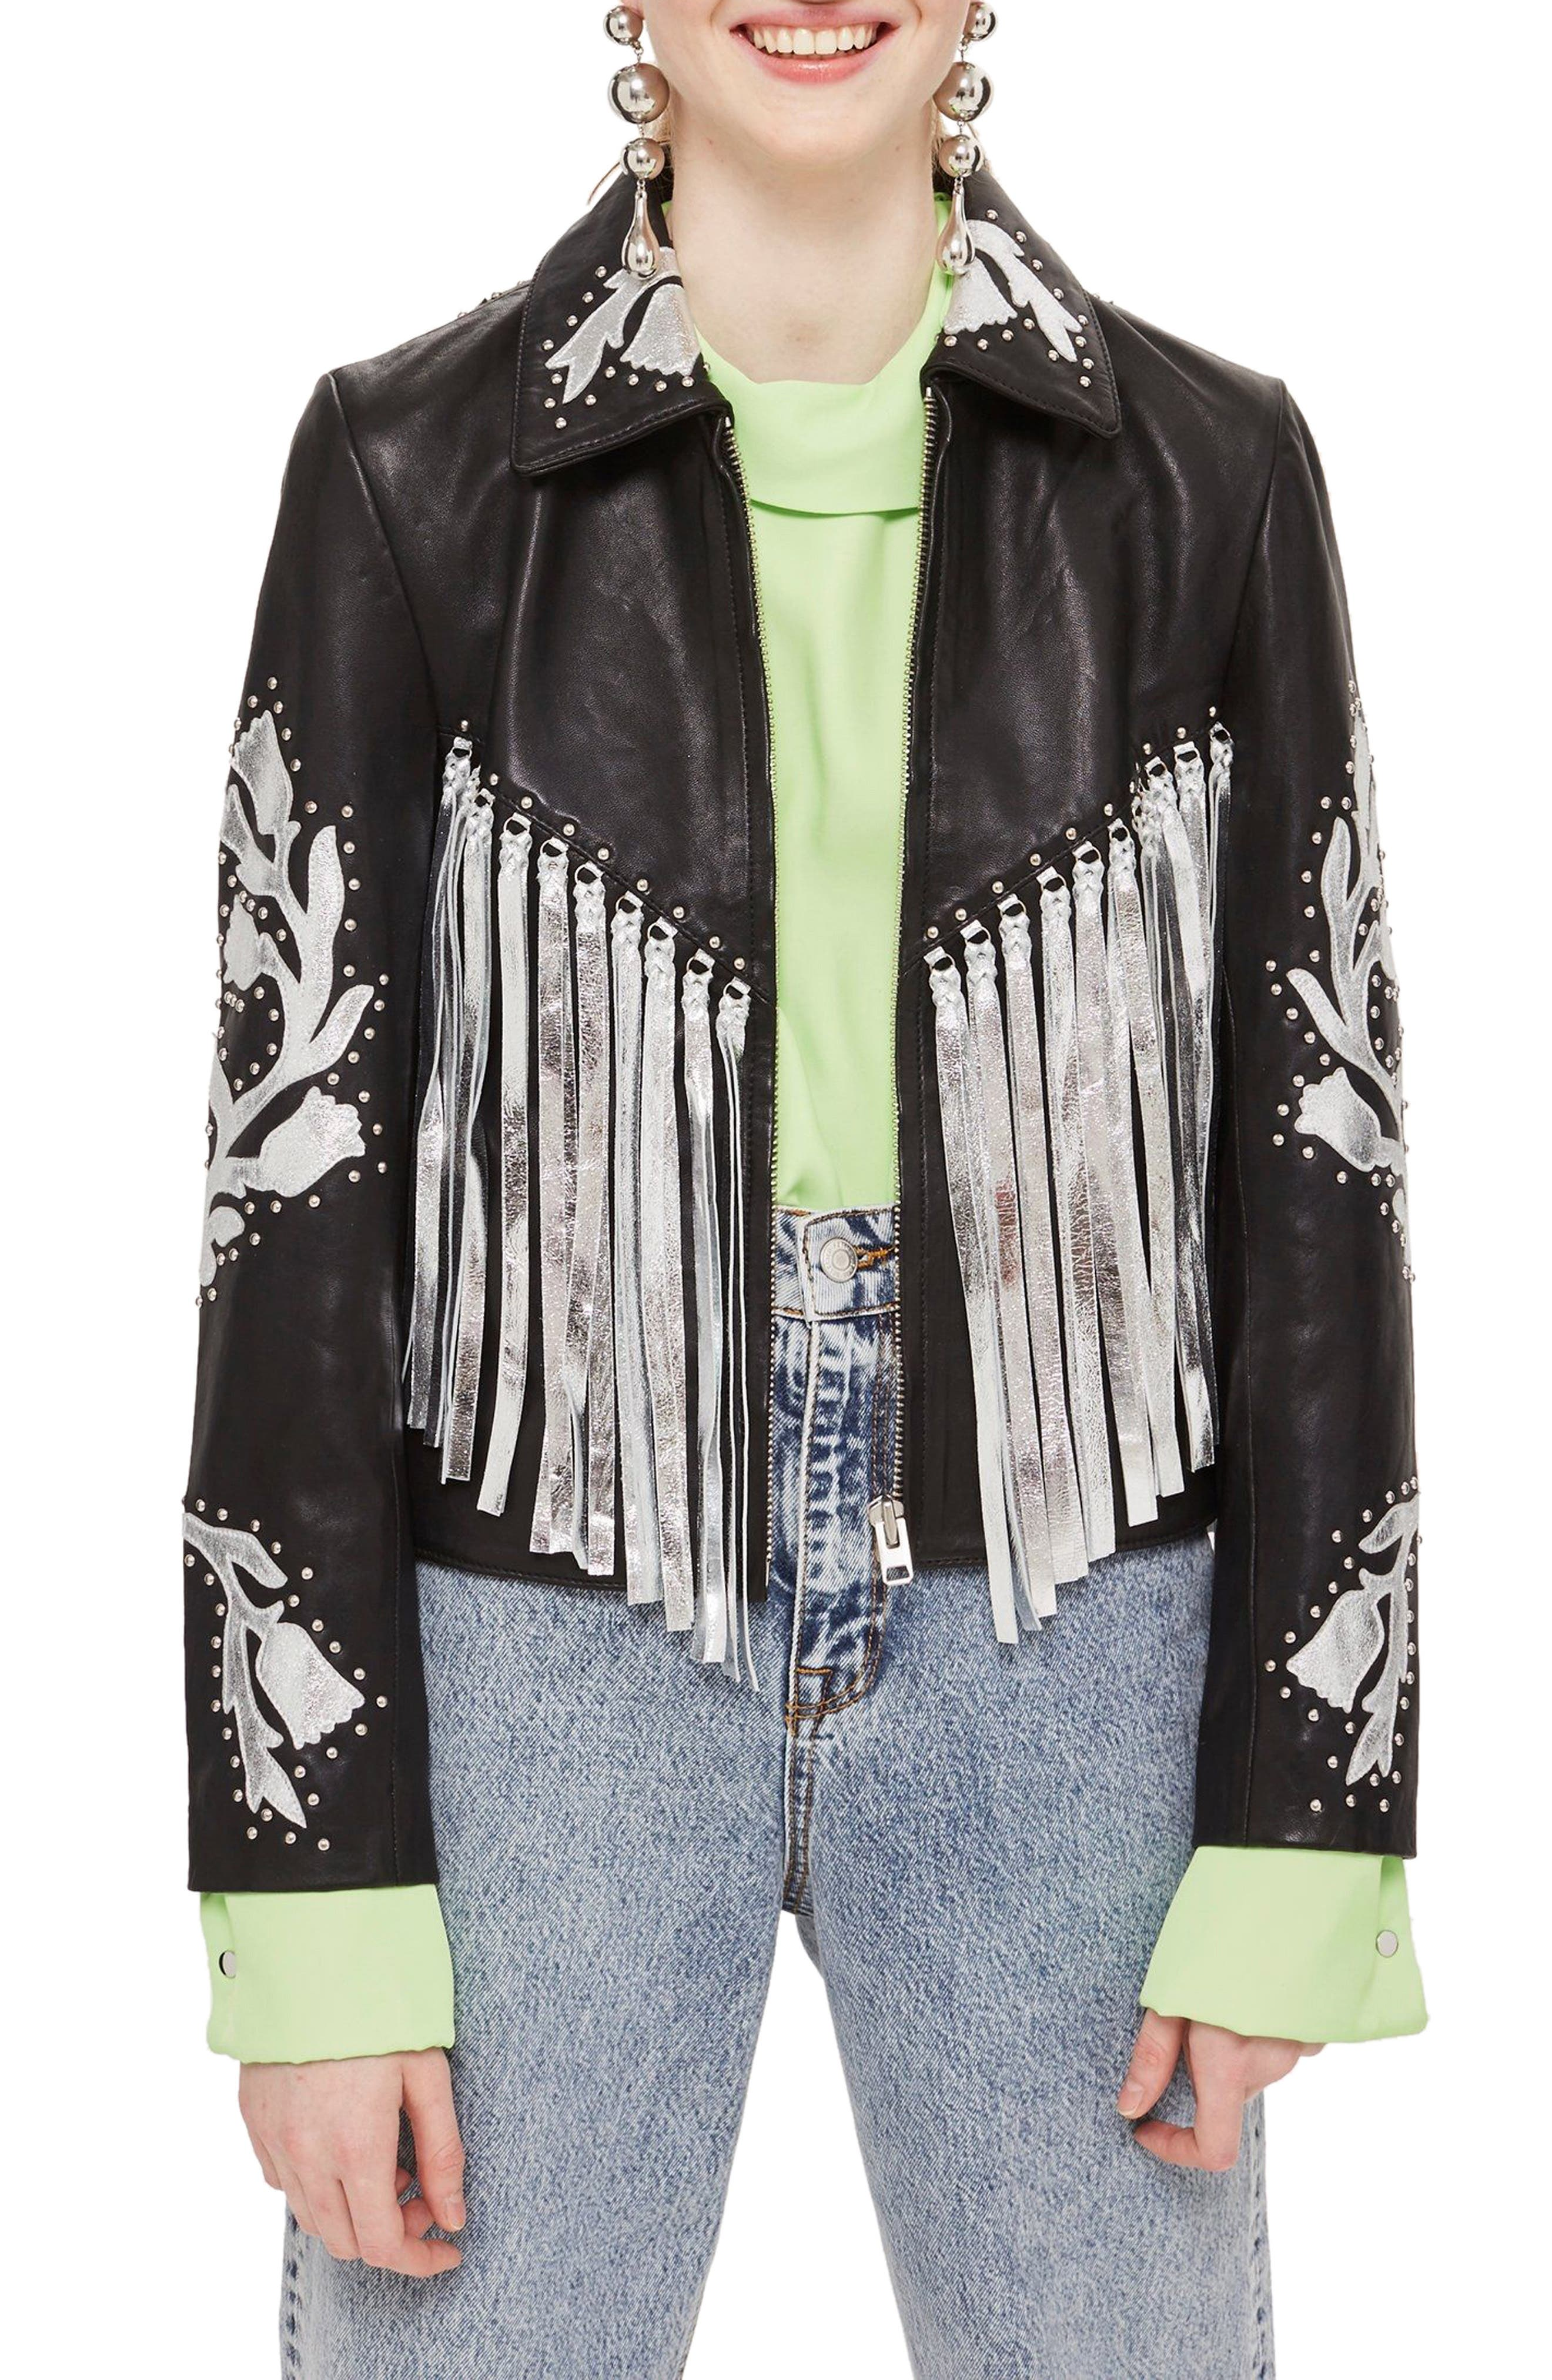 Austin Floral Silver Fringed Leather Jacket,                             Main thumbnail 1, color,                             001